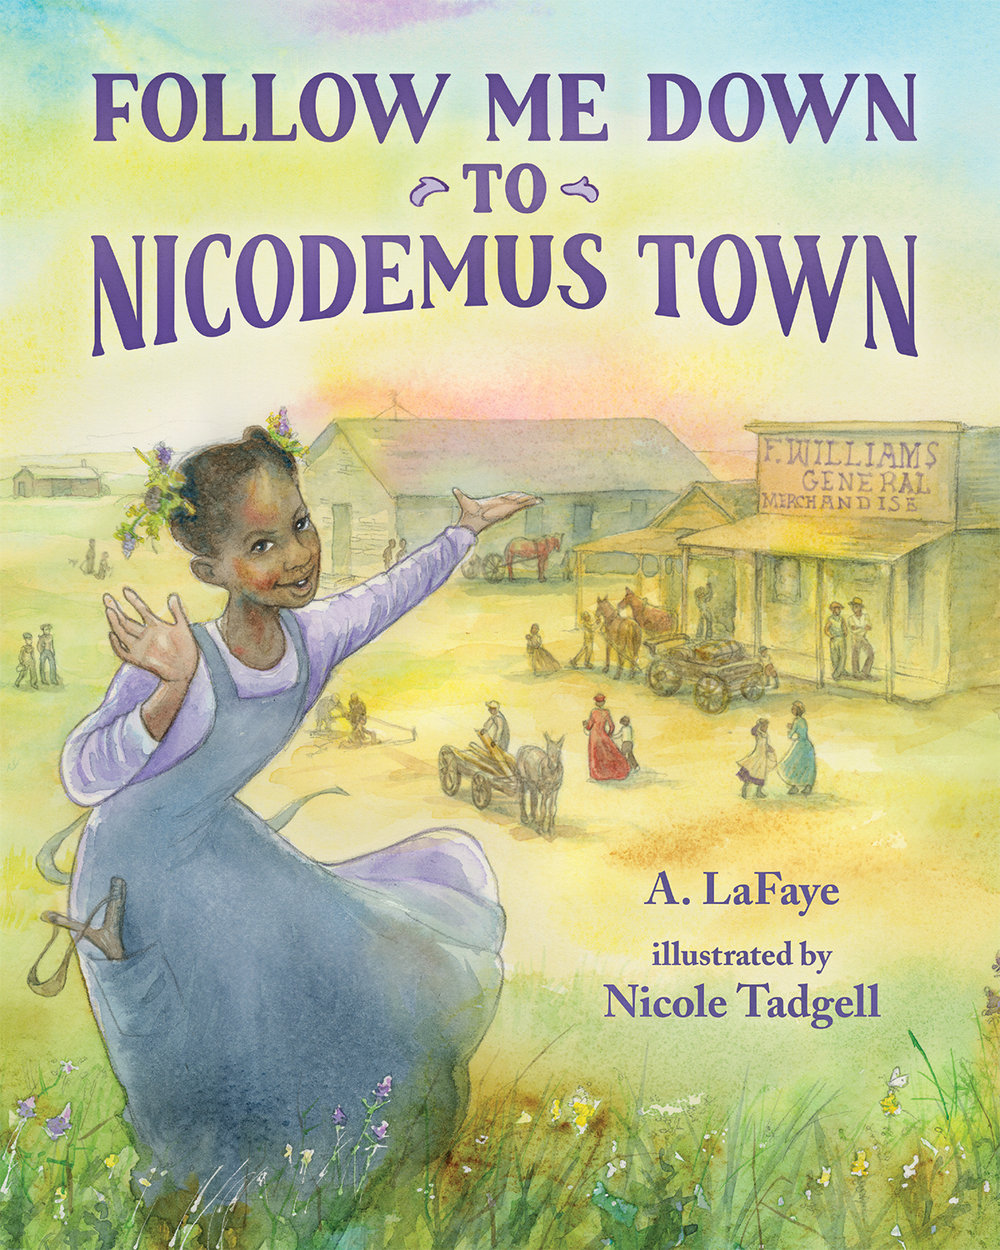 An upcoming picture book by Alexandria based on the real Nicodemus town in Kansas. Image courtesy of Alexandria LaFaye.